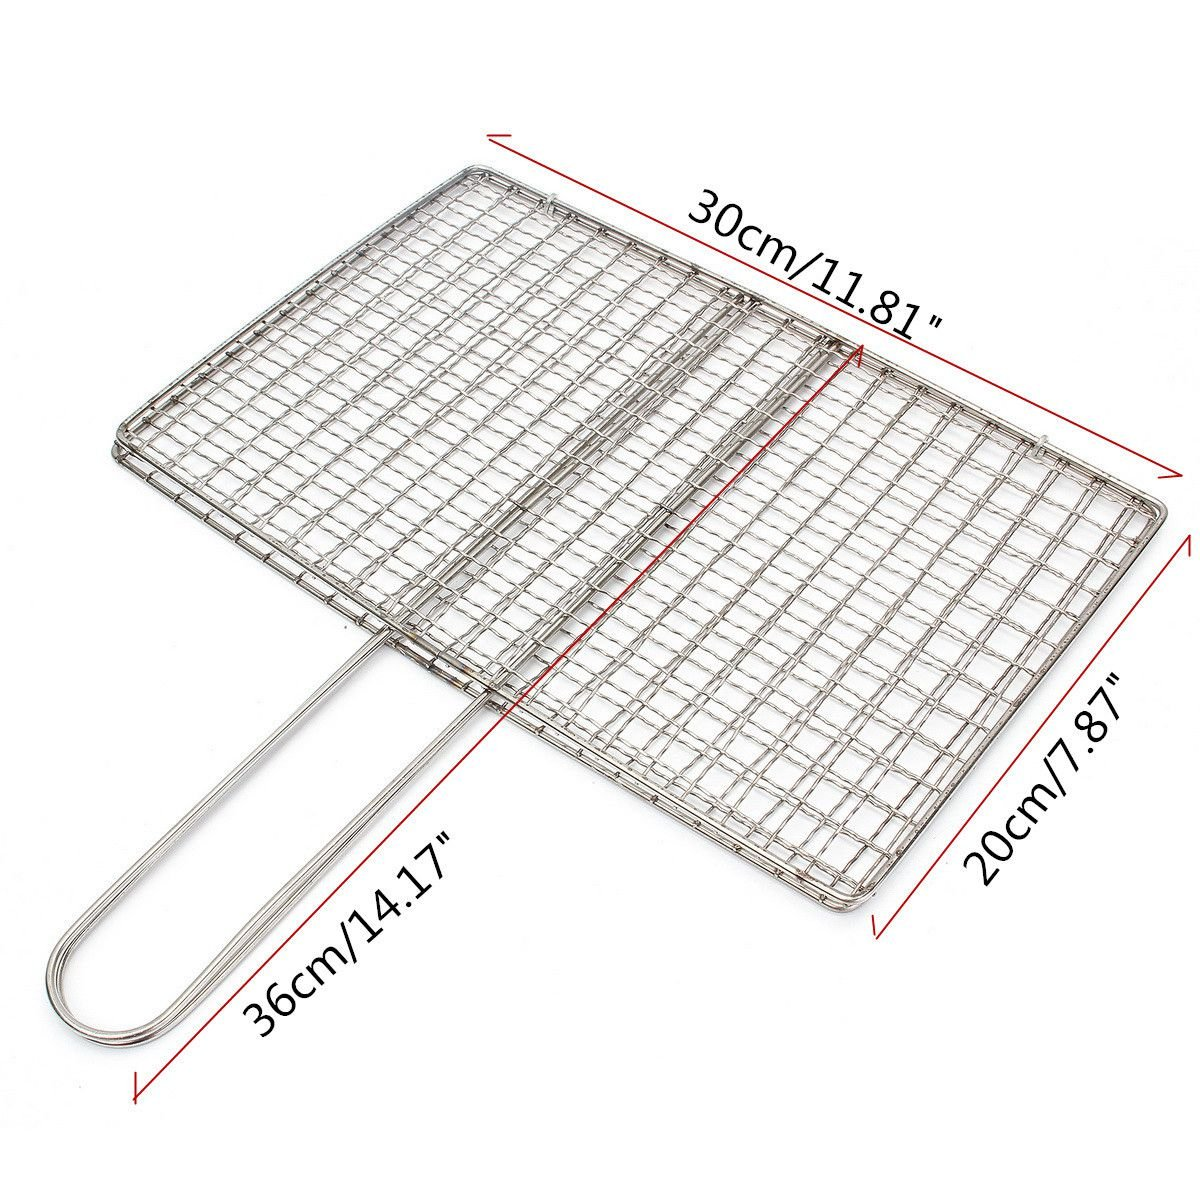 BBQ Hot Dog Sausage Grilling Basket Clip Steel Wood Handle Grill Mesh Wire Clamp Yard, Garden & Outdoor Living